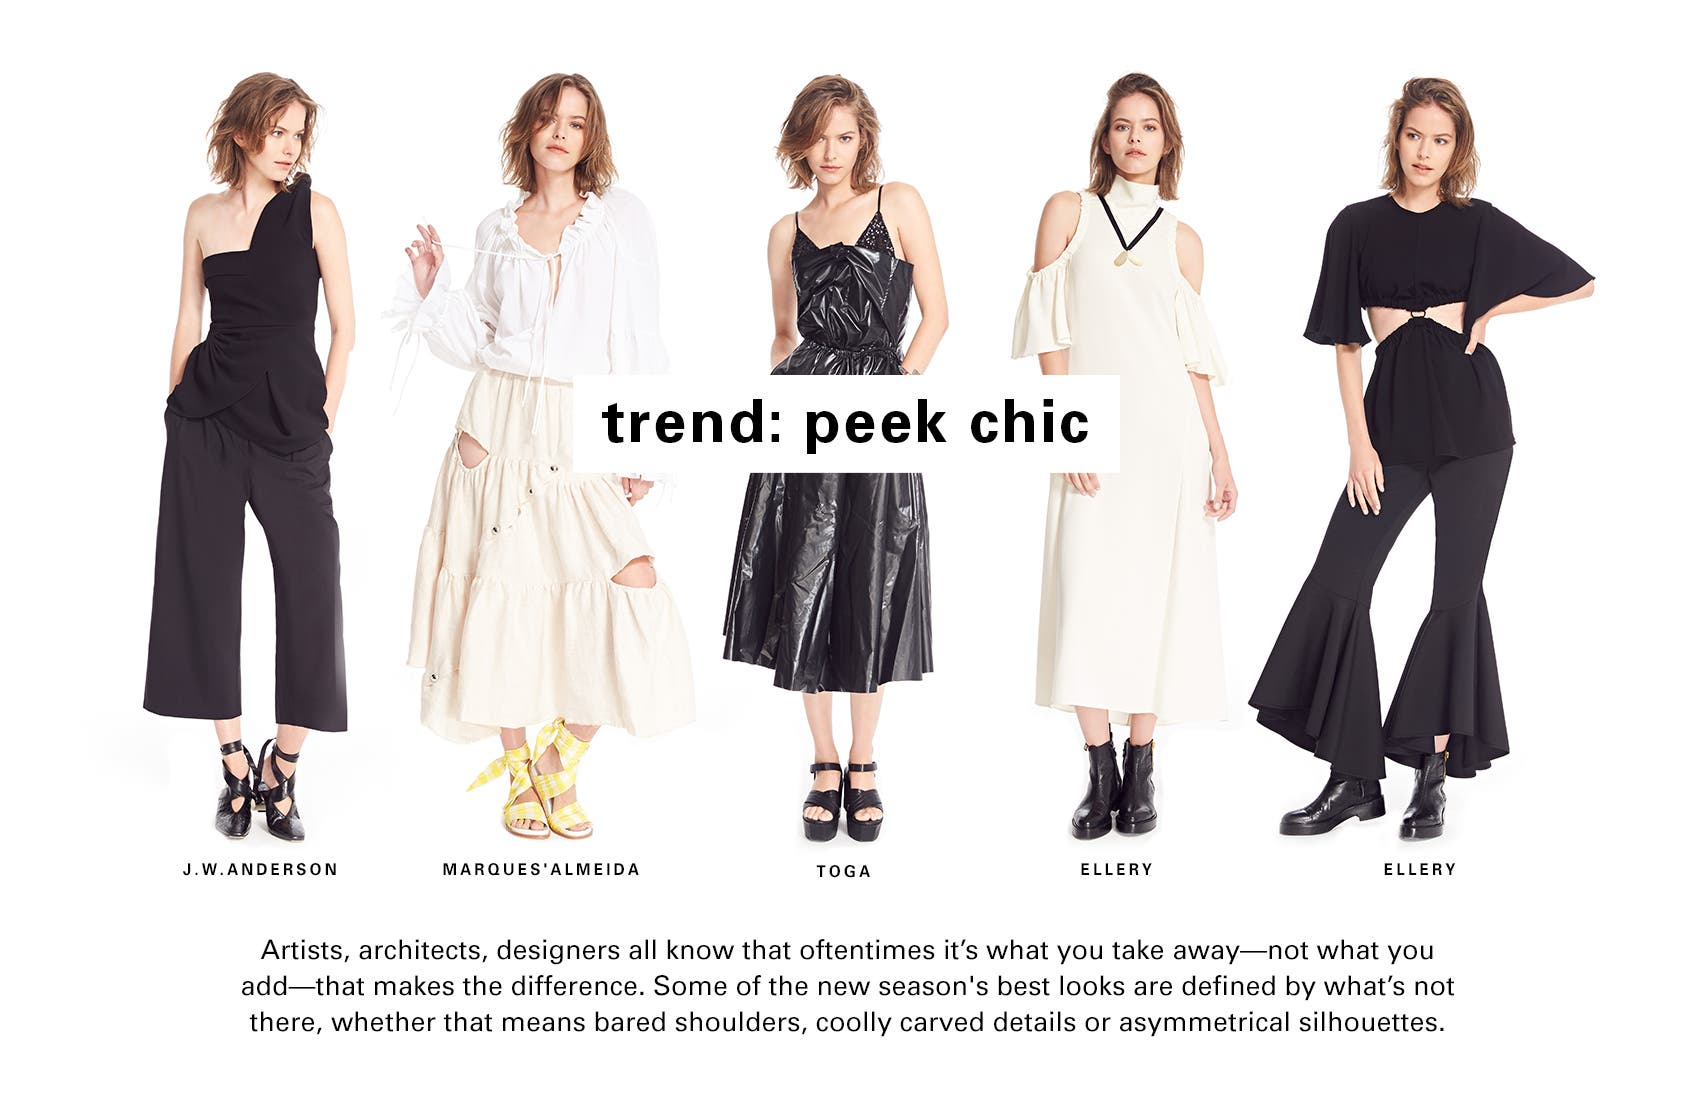 SPACE trend: peek chic. This resort season trend is all about bared shoulders, cutout details and asymmetrical silhouettes.